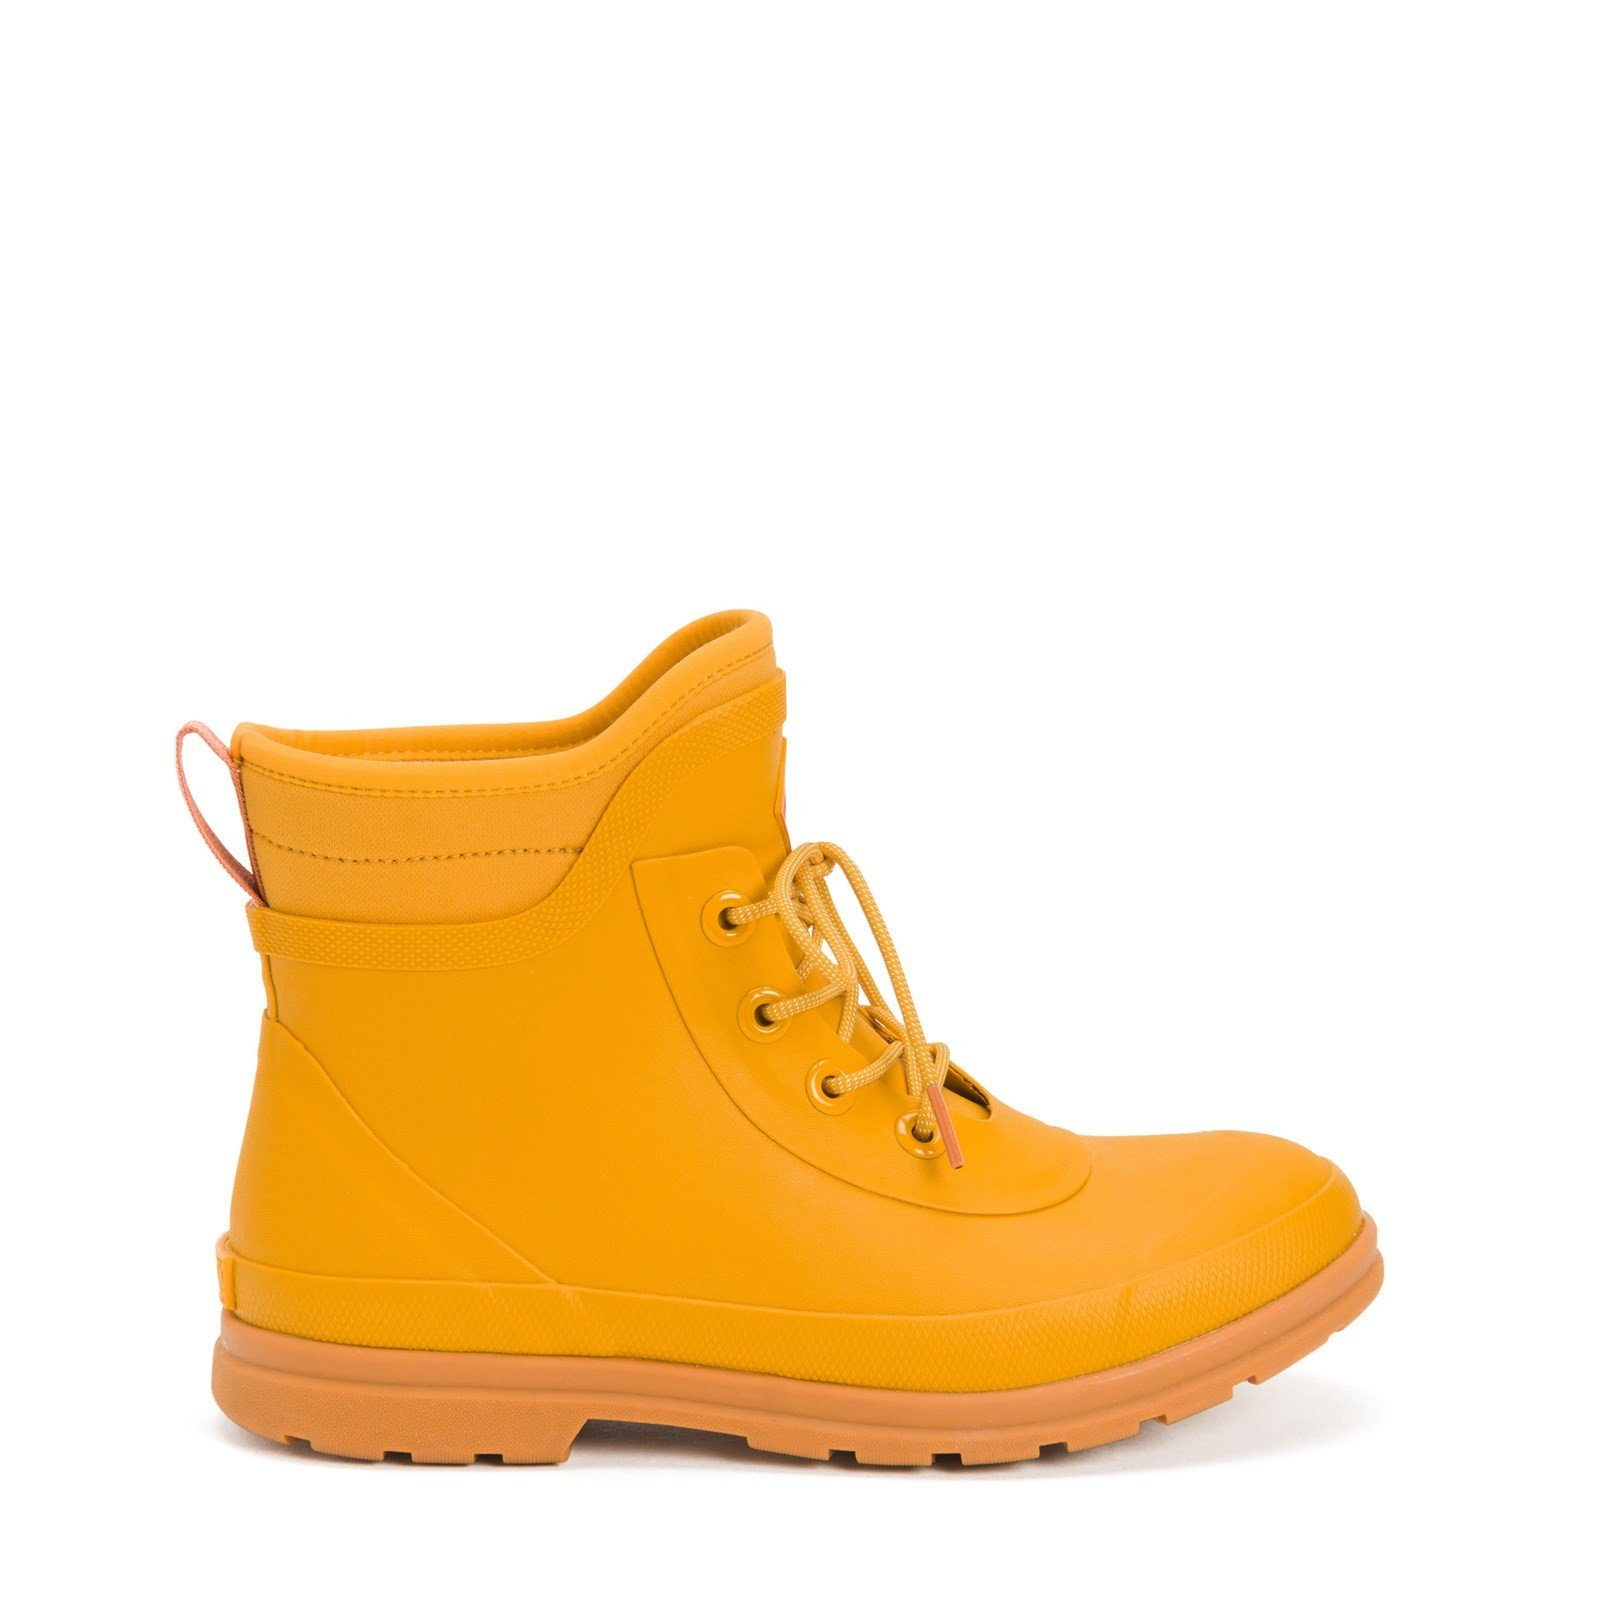 Muck Boots Women's Originals Lace Up Ankle Boot Various Colours 30079 - Sunflower 9